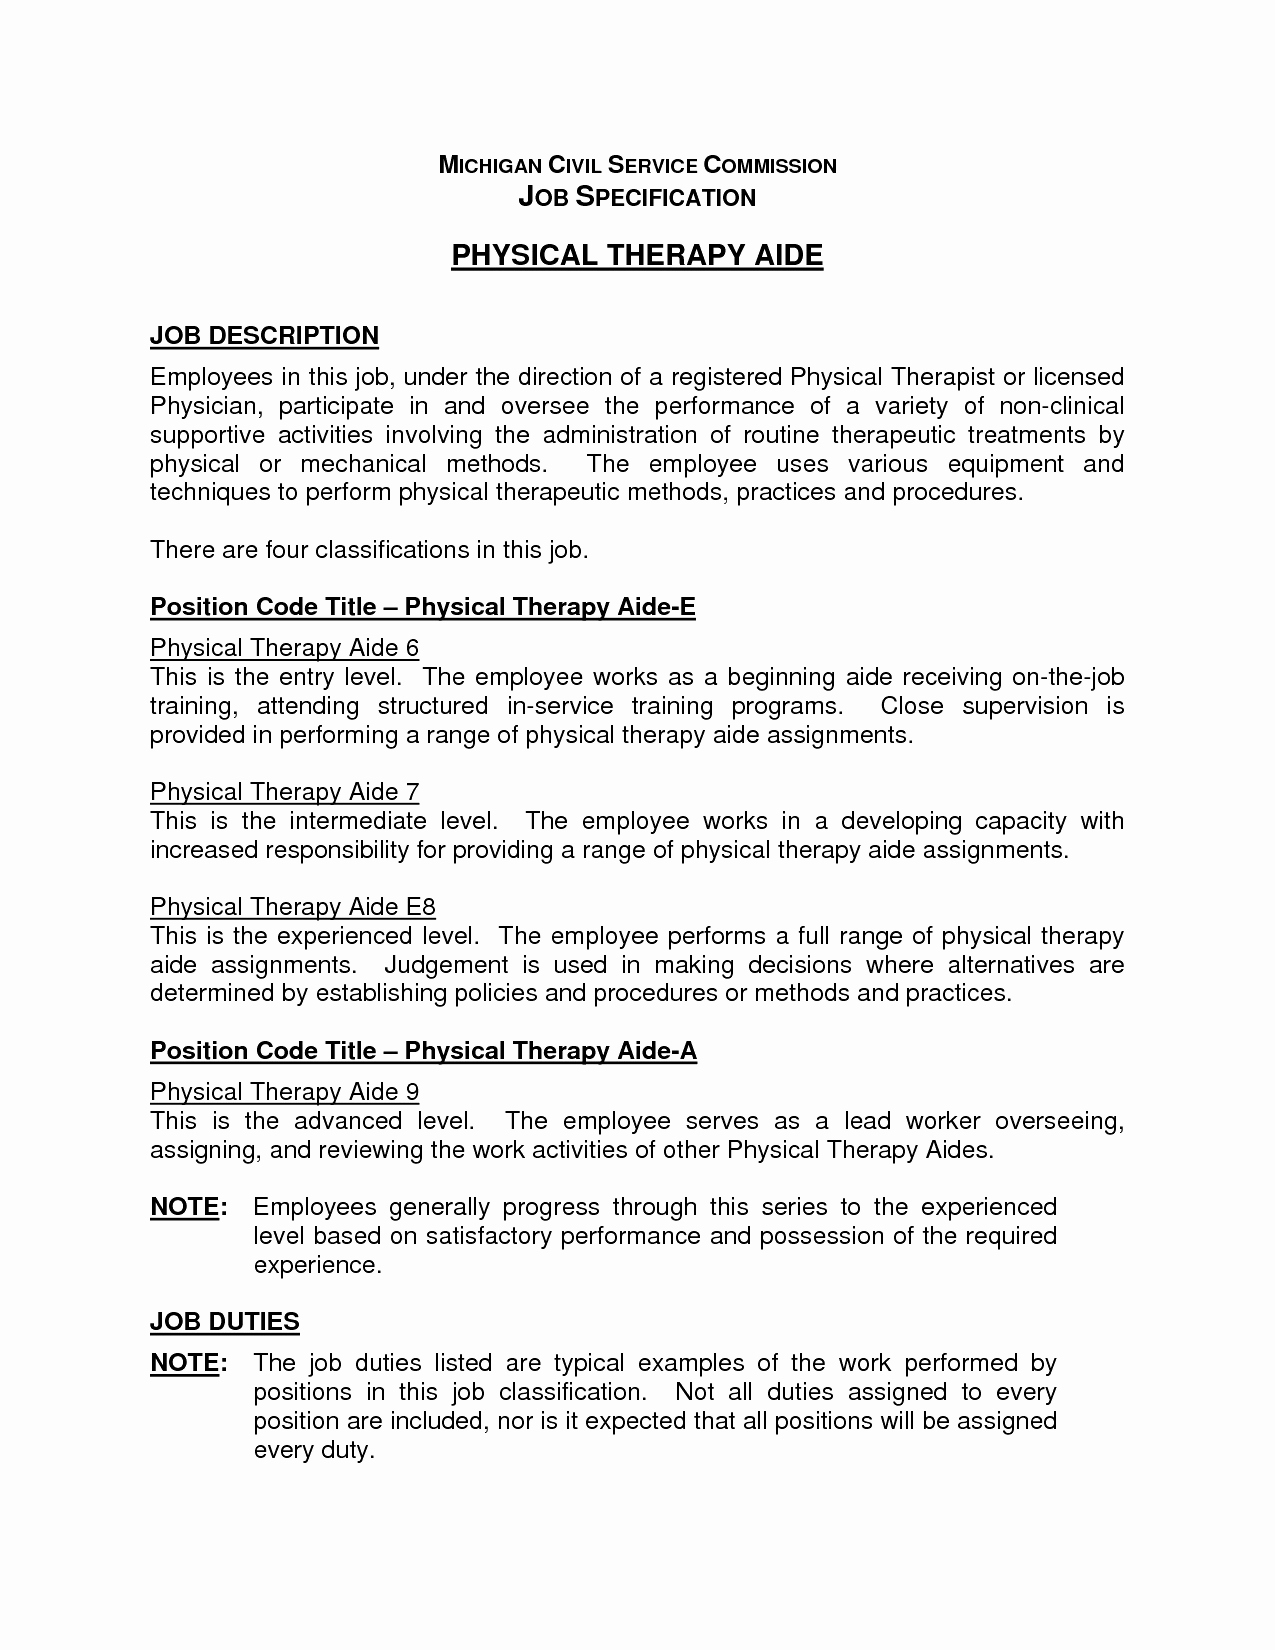 physical therapist cover letter sample - Zohre ...